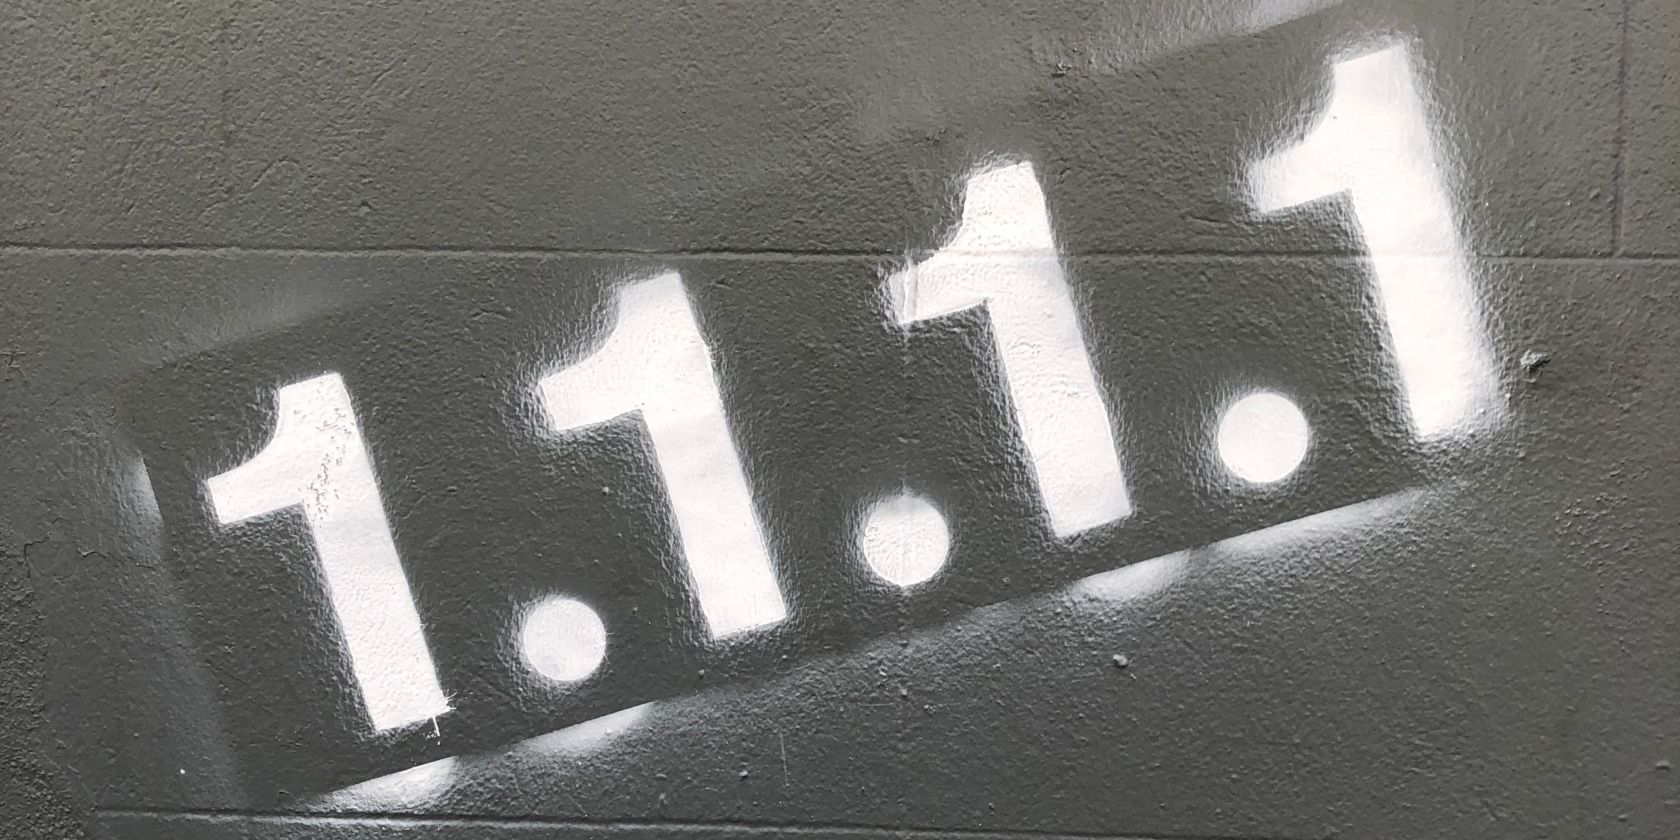 You Can Now Use Cloudflare's 1.1.1.1 DNS on Mobile